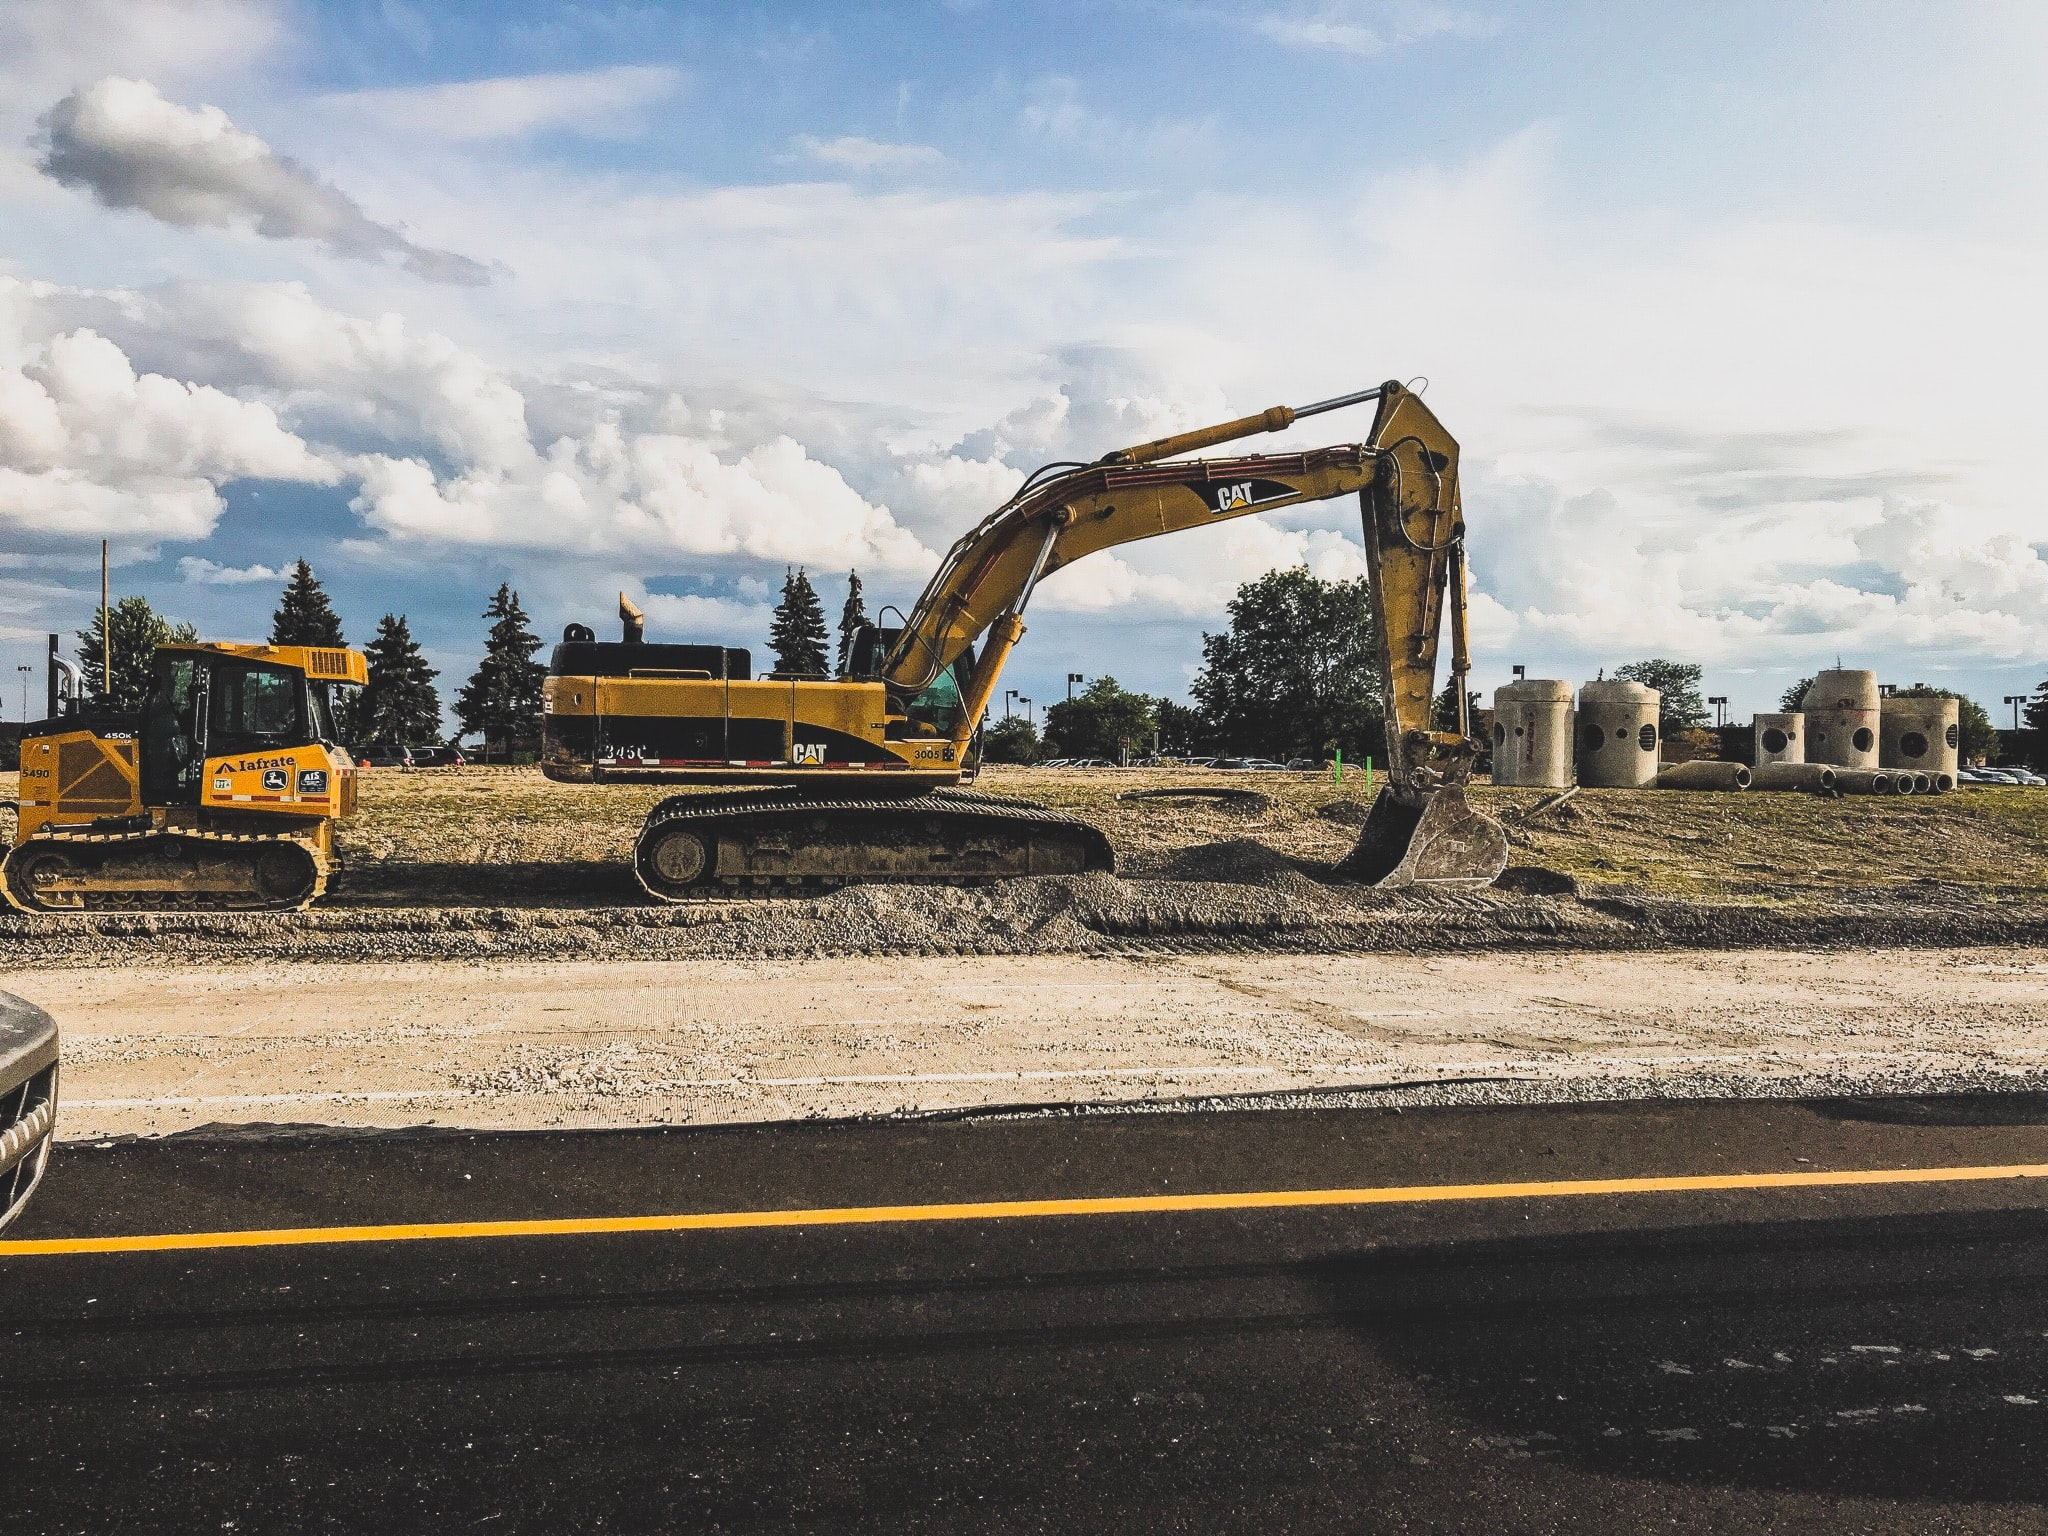 Heavy Equipment for construction